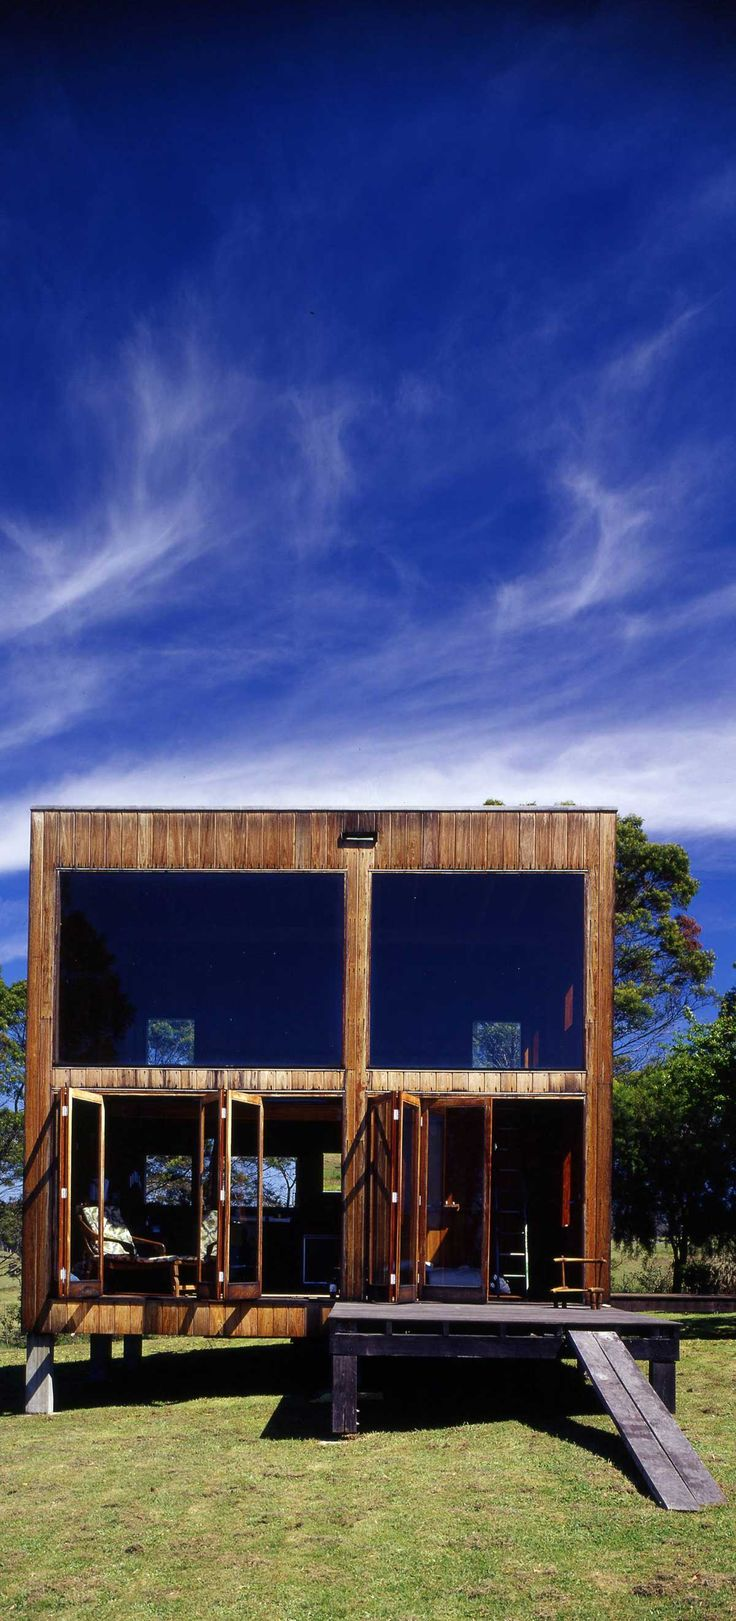 The Box House is a cube of 6 meters built out of local Australian hardwood. The retreat was designed by the late Nicholas Murcutt Architect